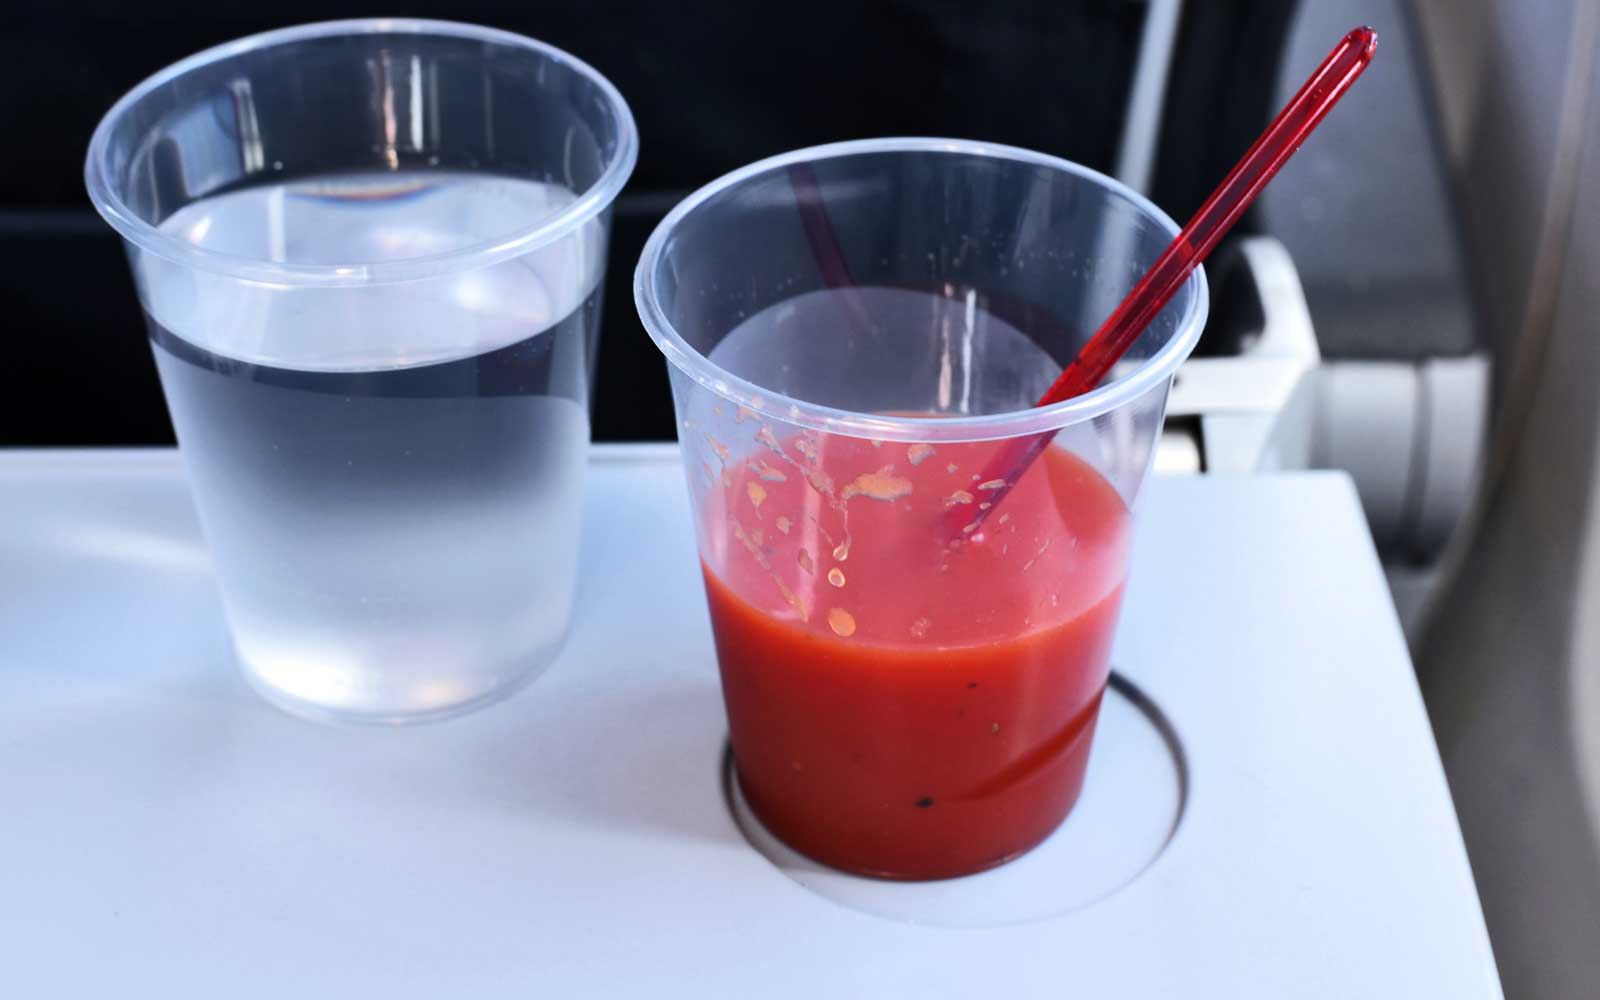 United Tried to Get Rid of Tomato Juice on Flights and People Were Outraged